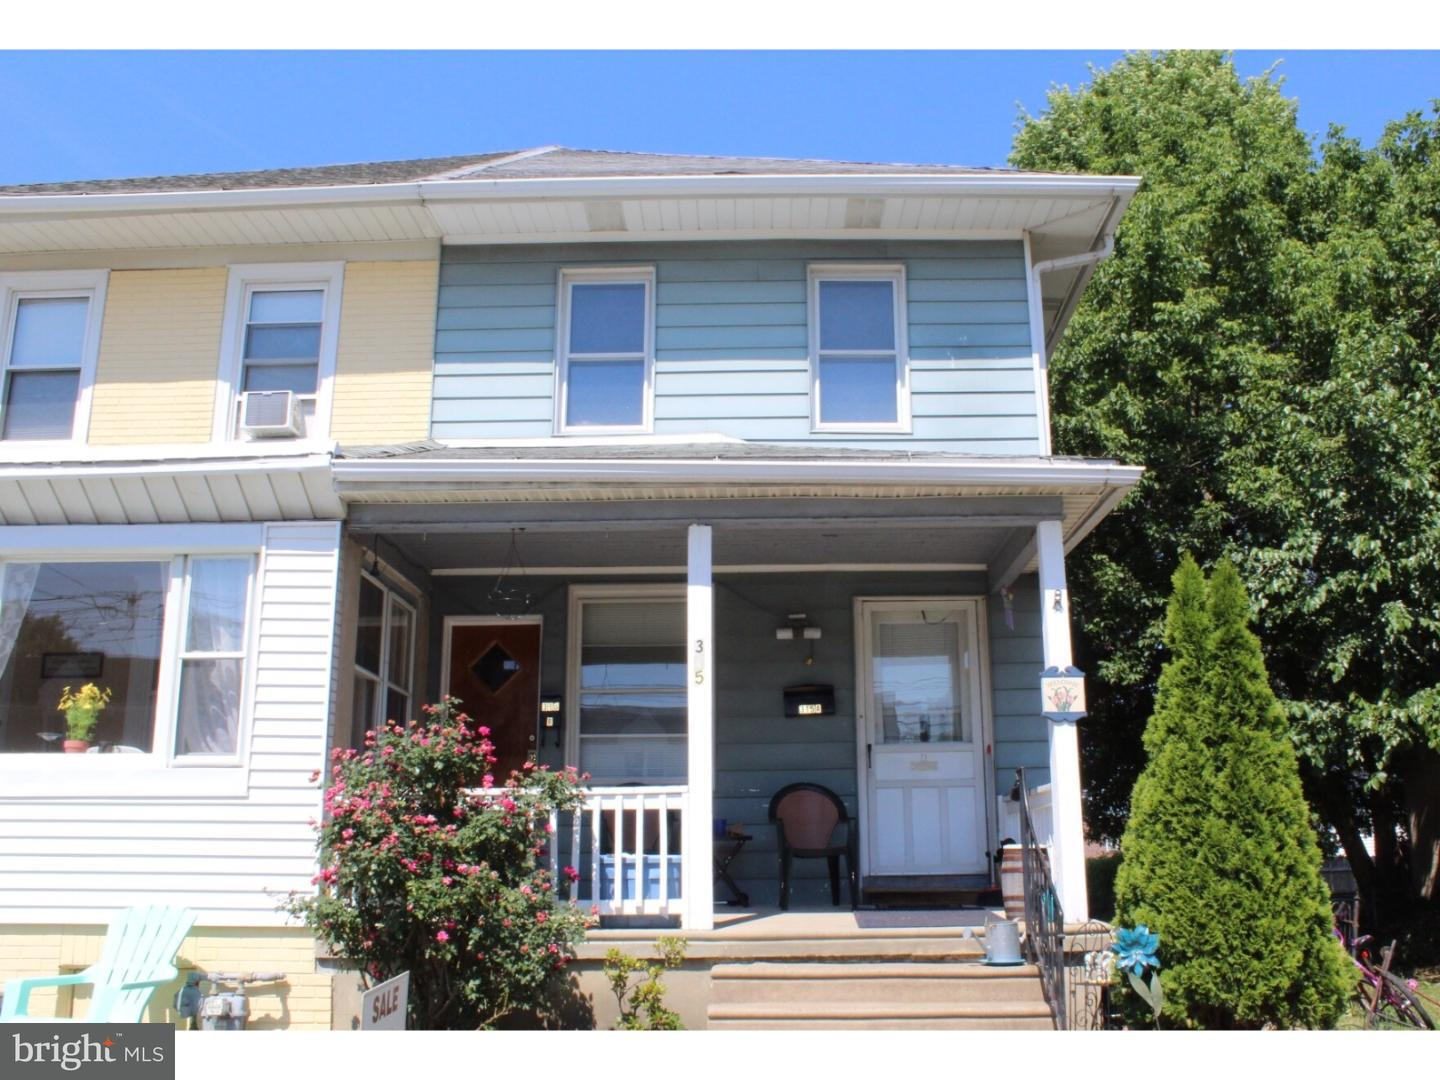 Duplex for Sale at 315 S PENN Street Clifton Heights, Pennsylvania 19018 United States